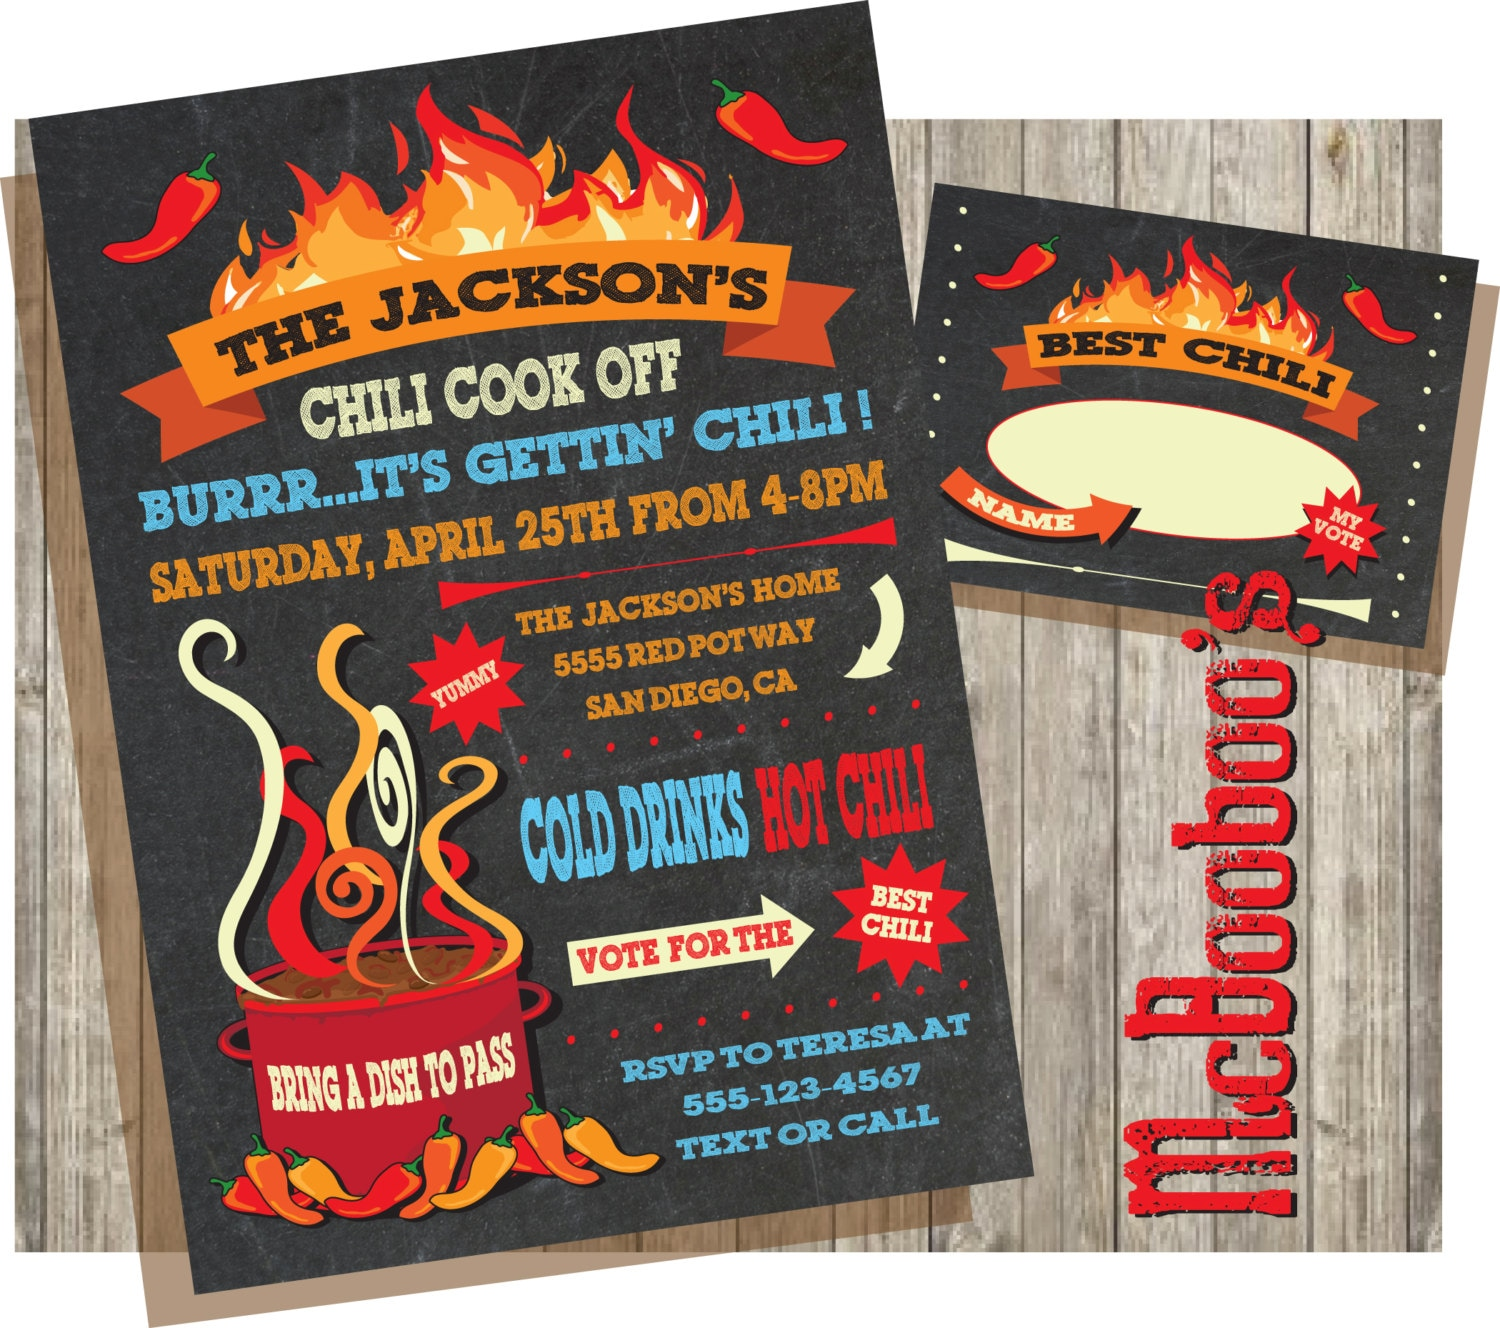 Chili cook off invitations on a chalkboard background zoom xflitez Choice Image